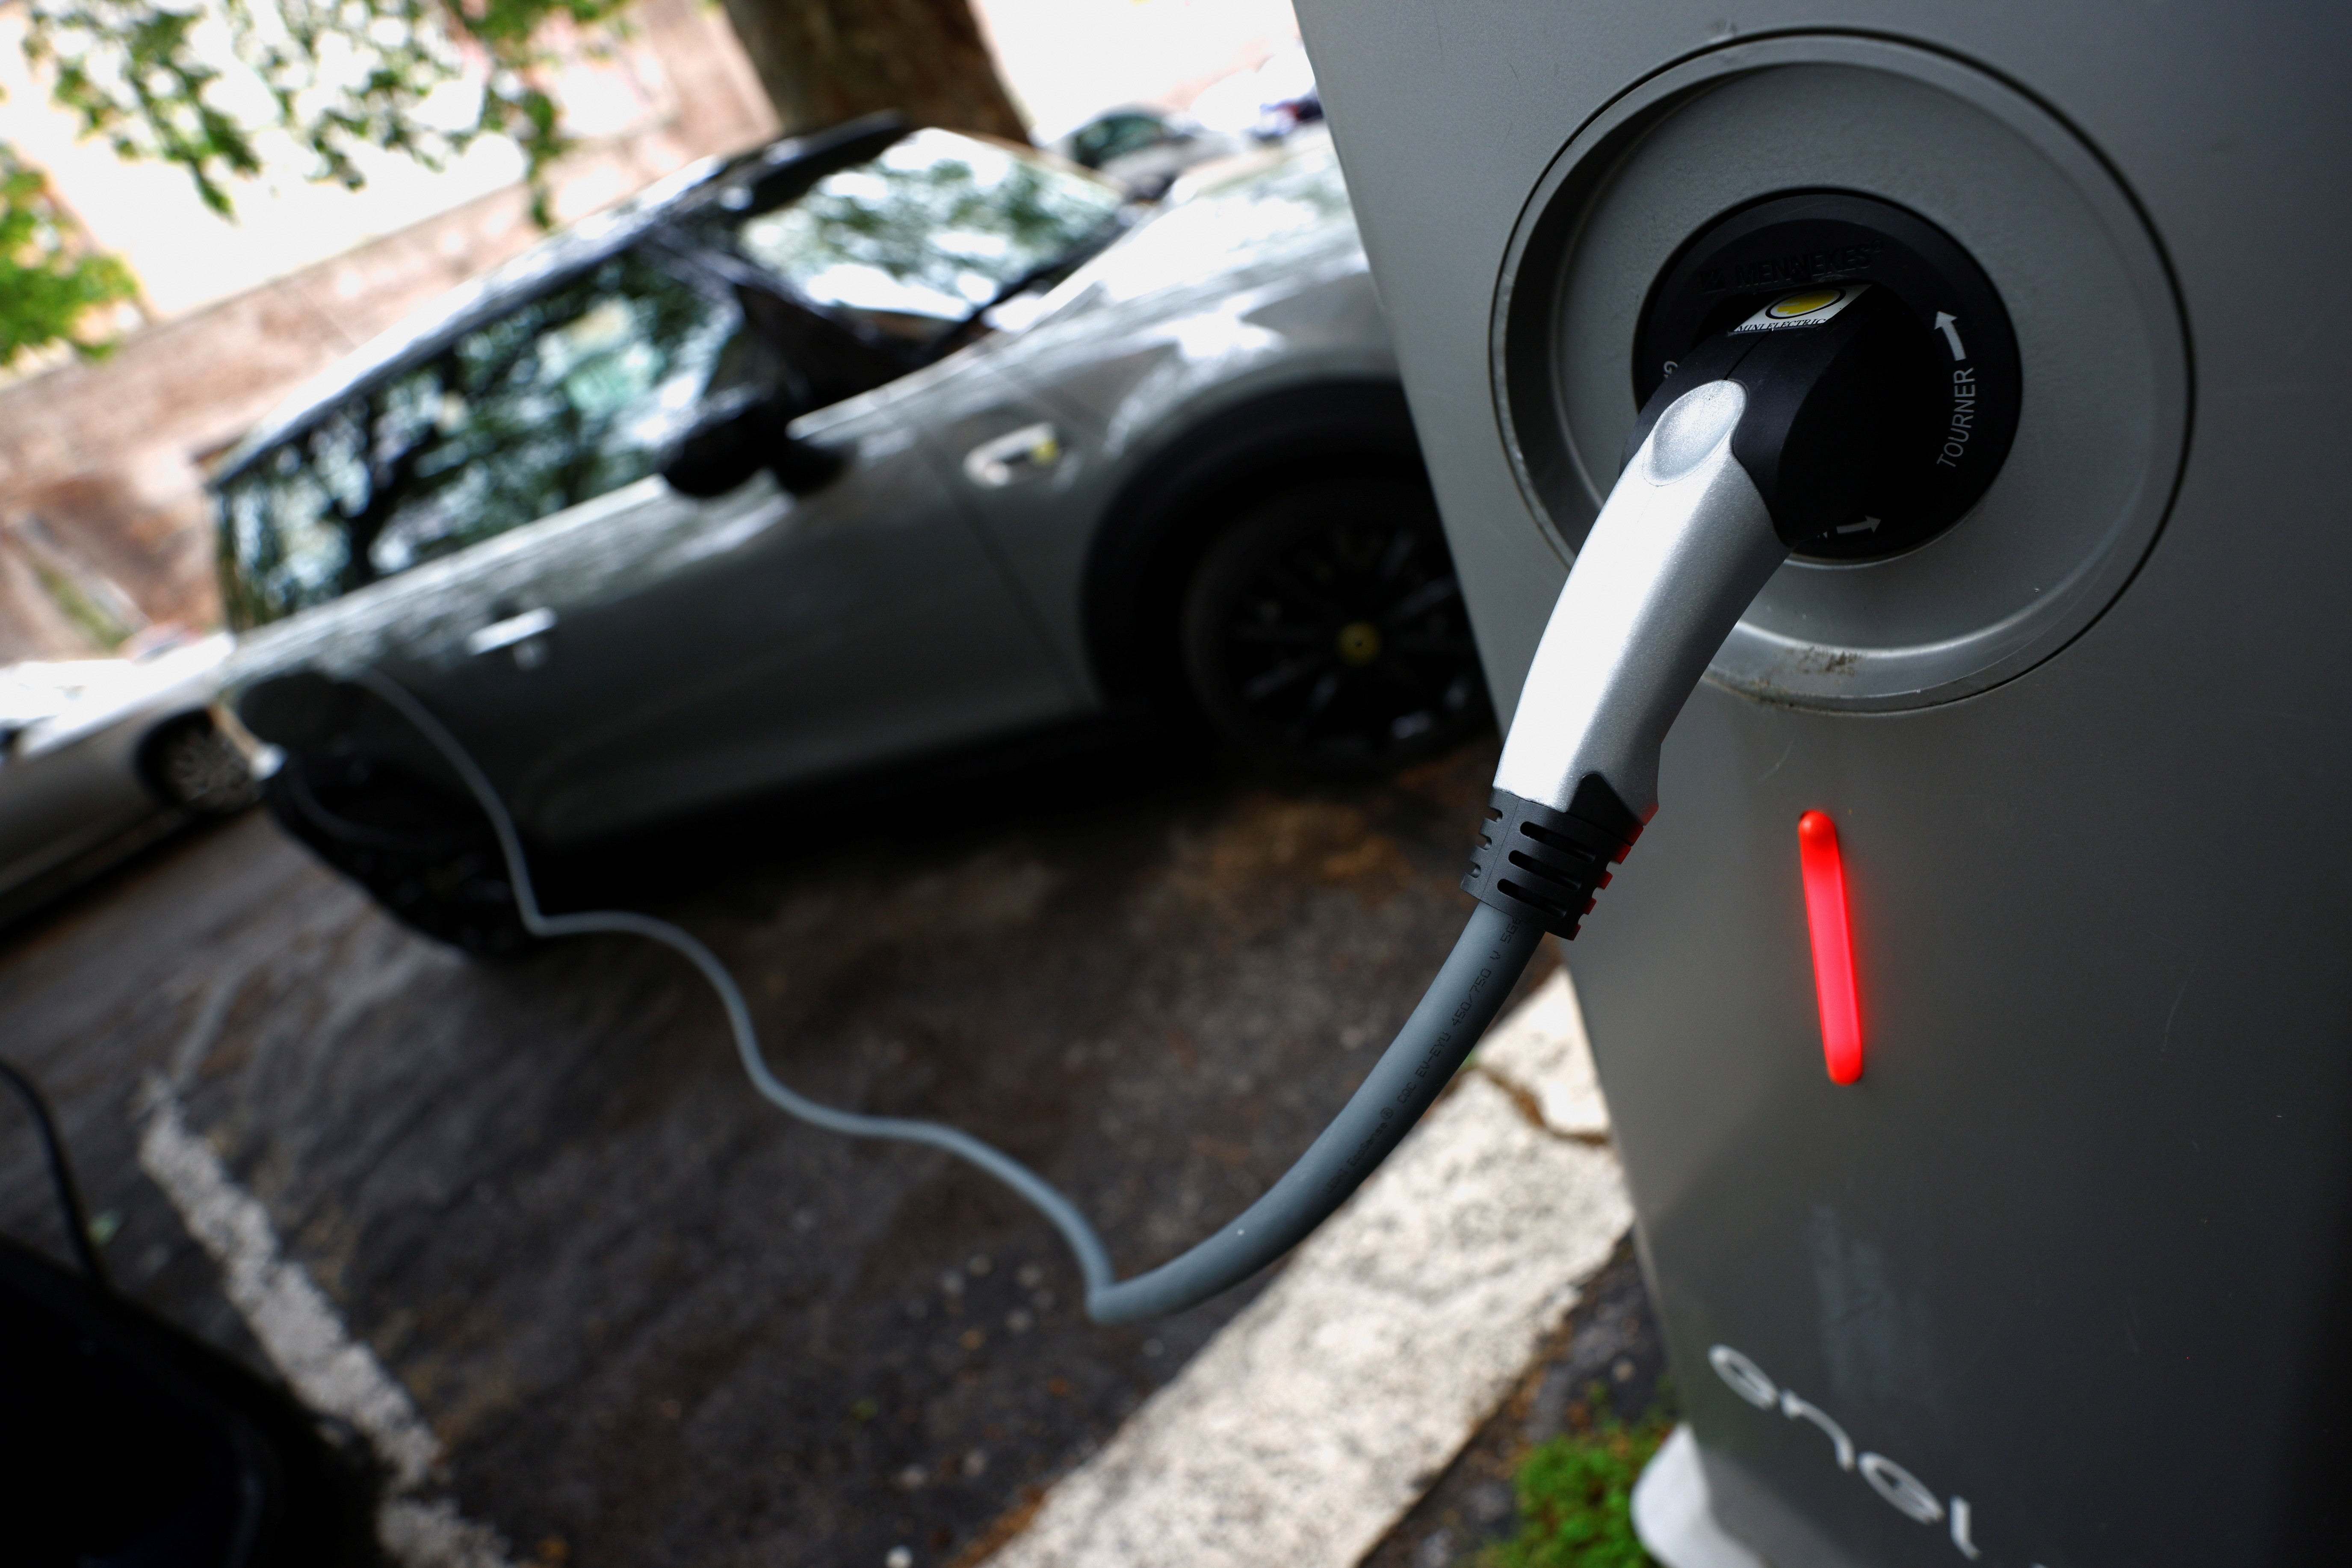 An electric car is seen plugged in at a charging point for electric vehicles